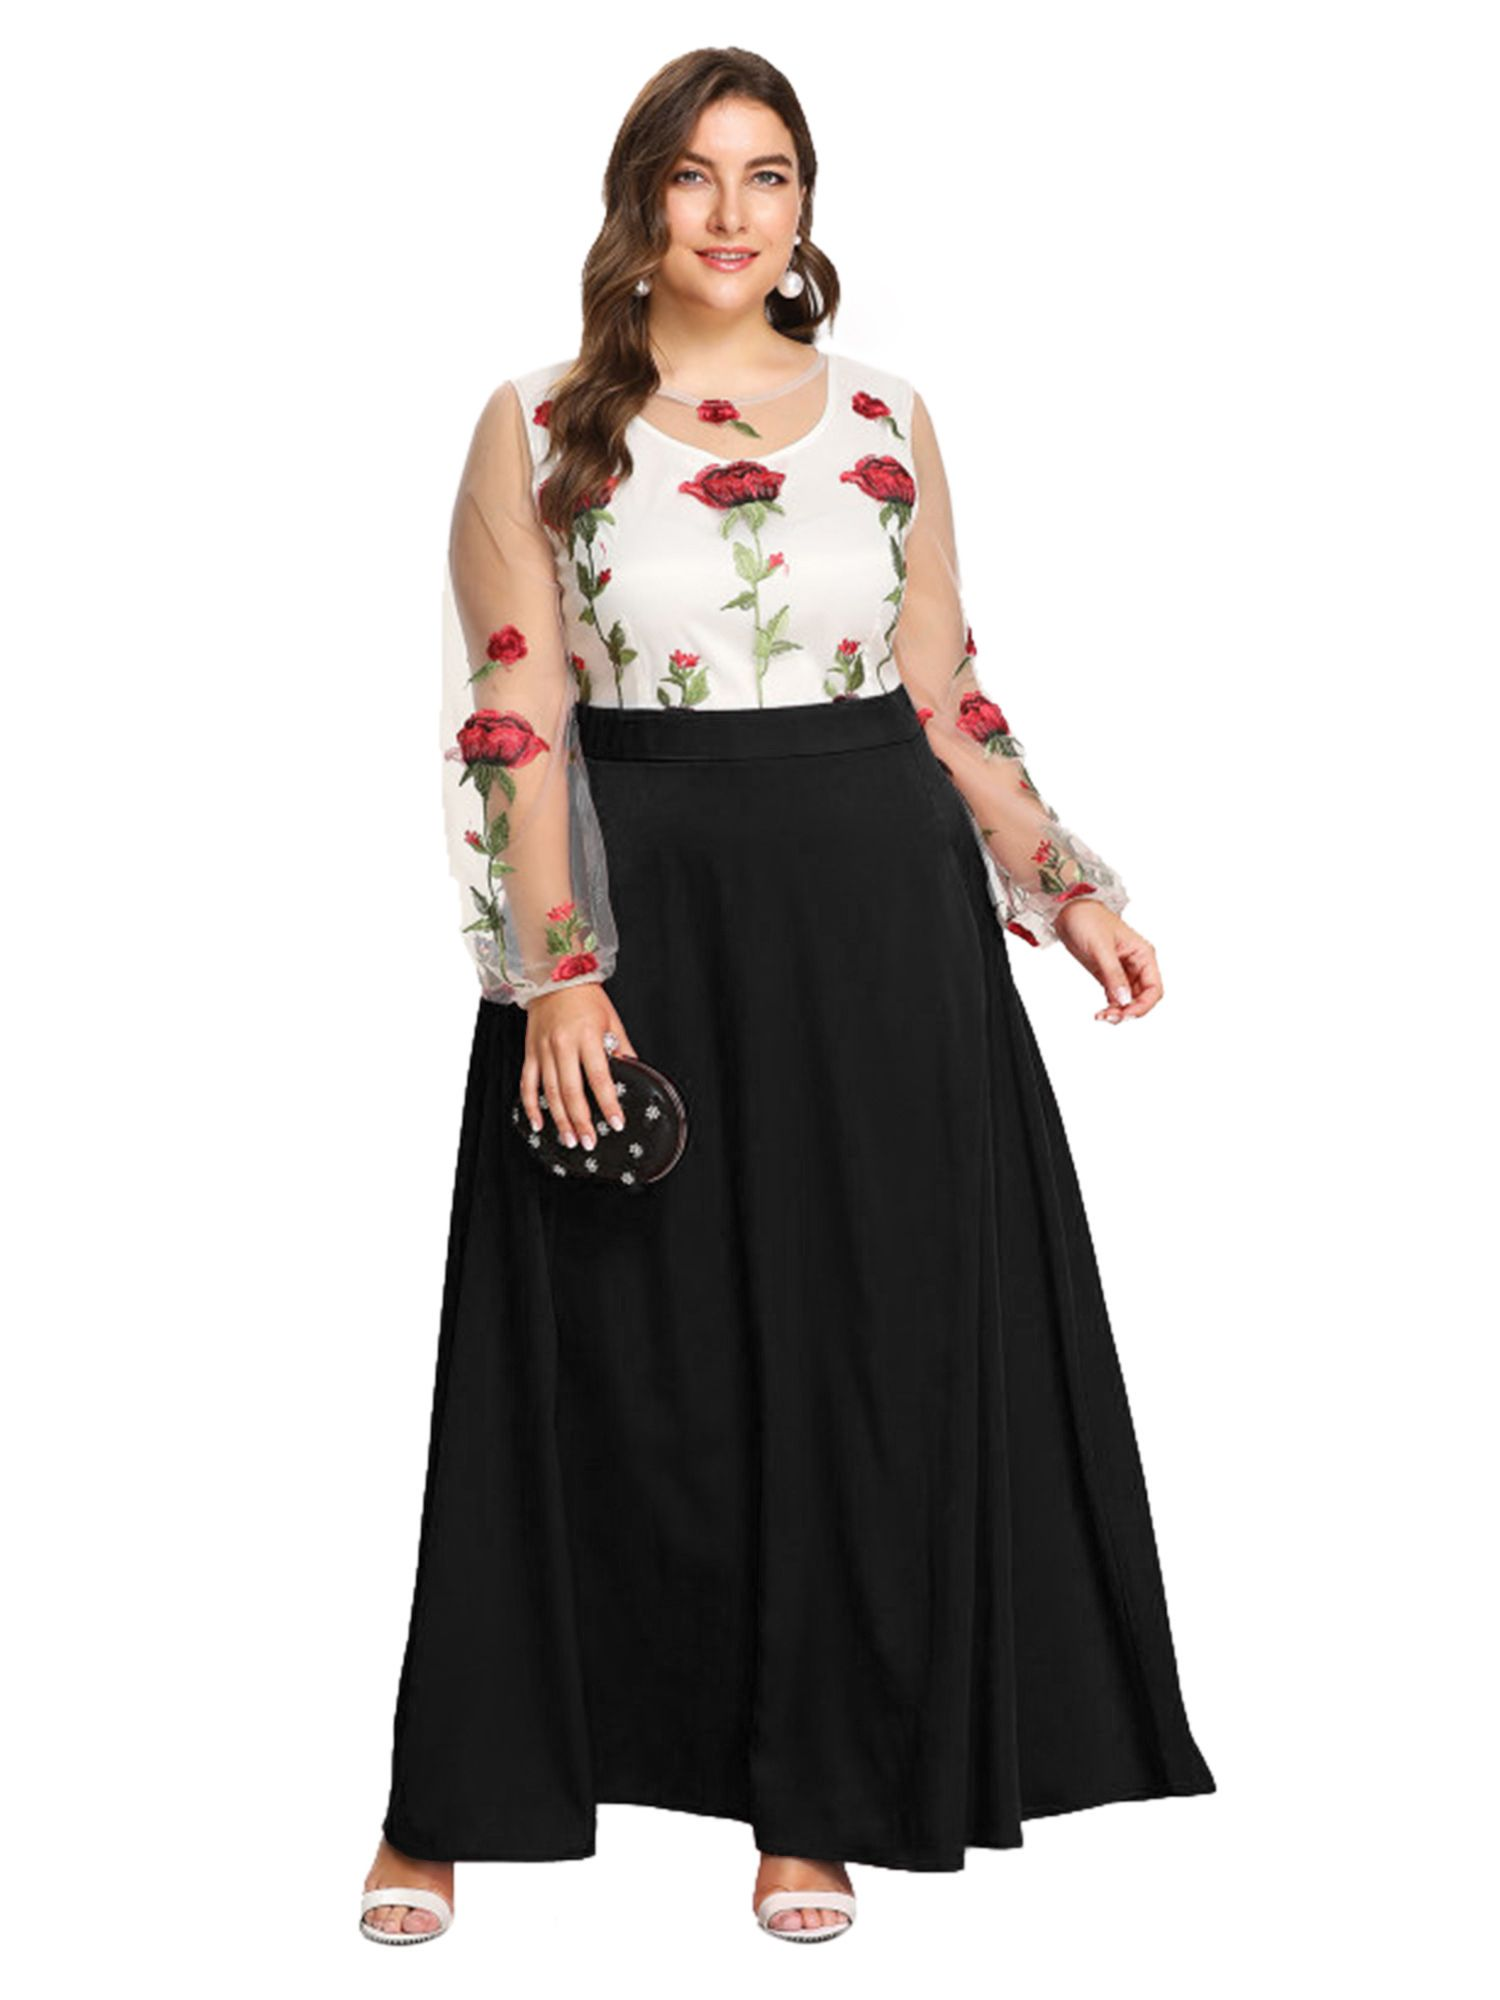 2b0fba48da3 ESPRLIA Women s Empire Waist Plus Size Maxi Cocktail Dress